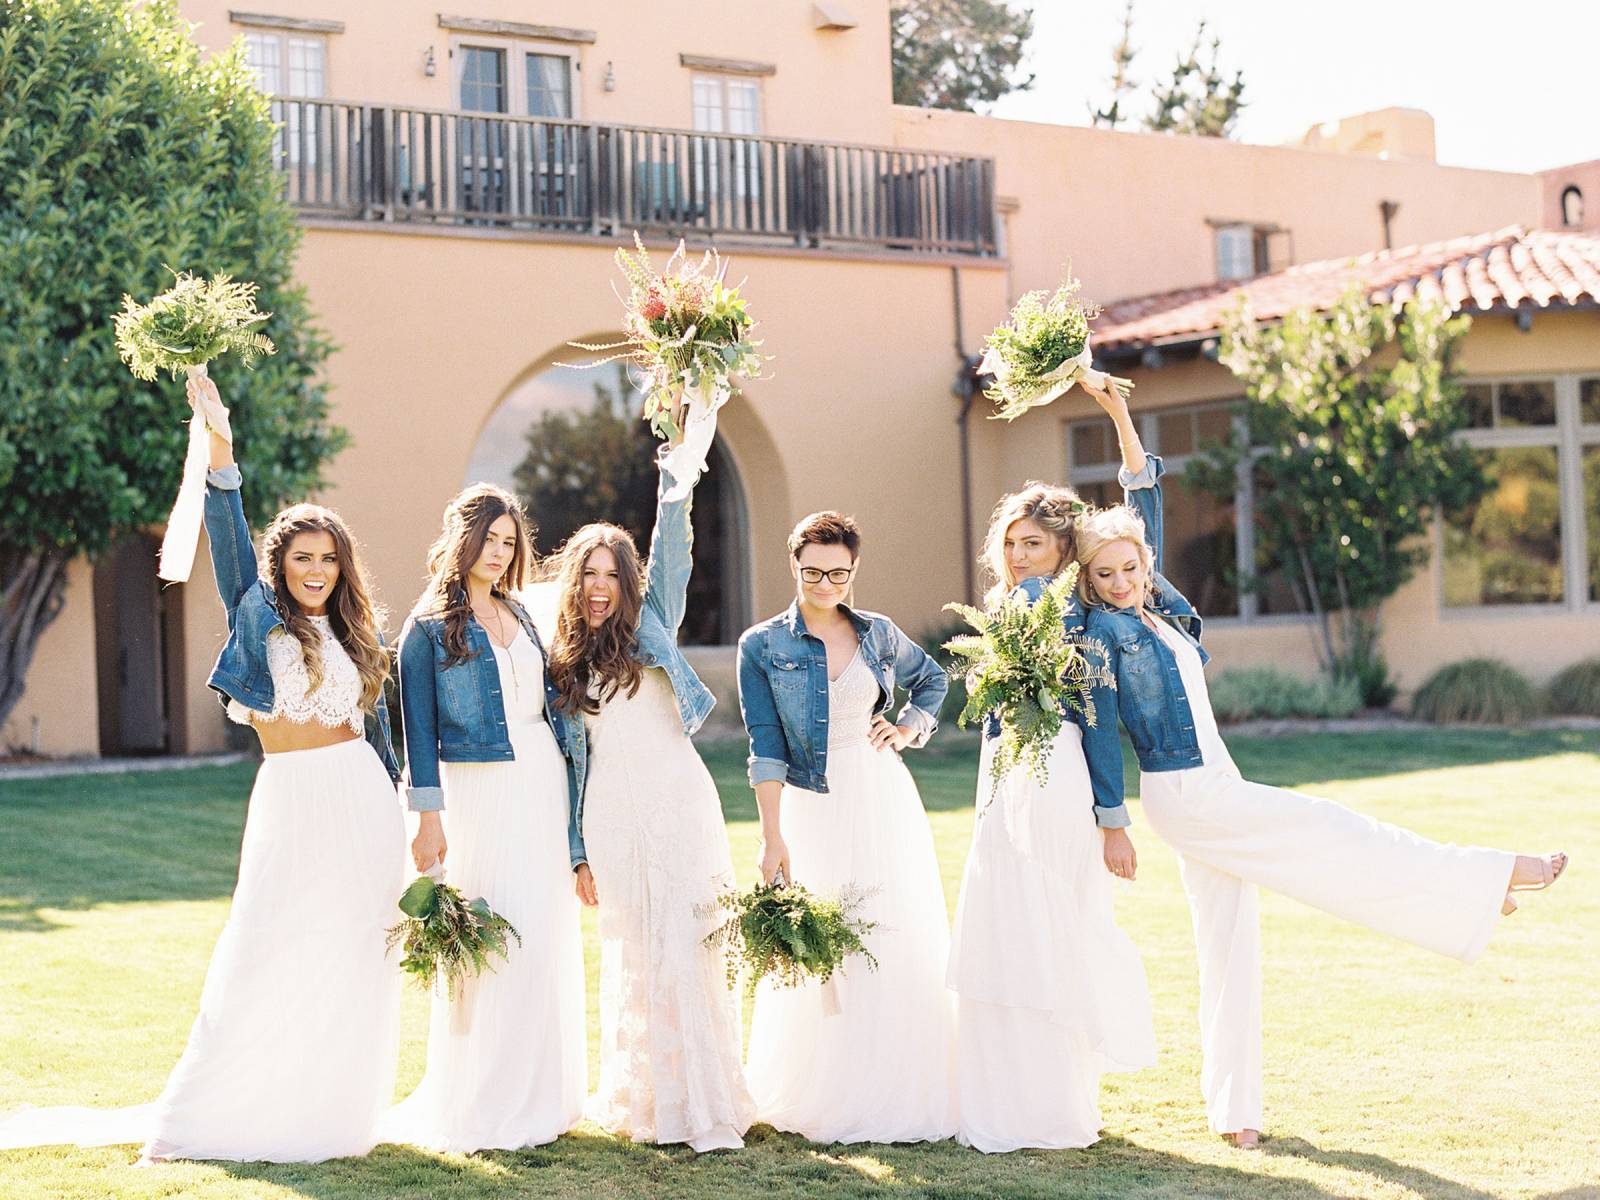 bridesmaids in white dresses and denim jackets